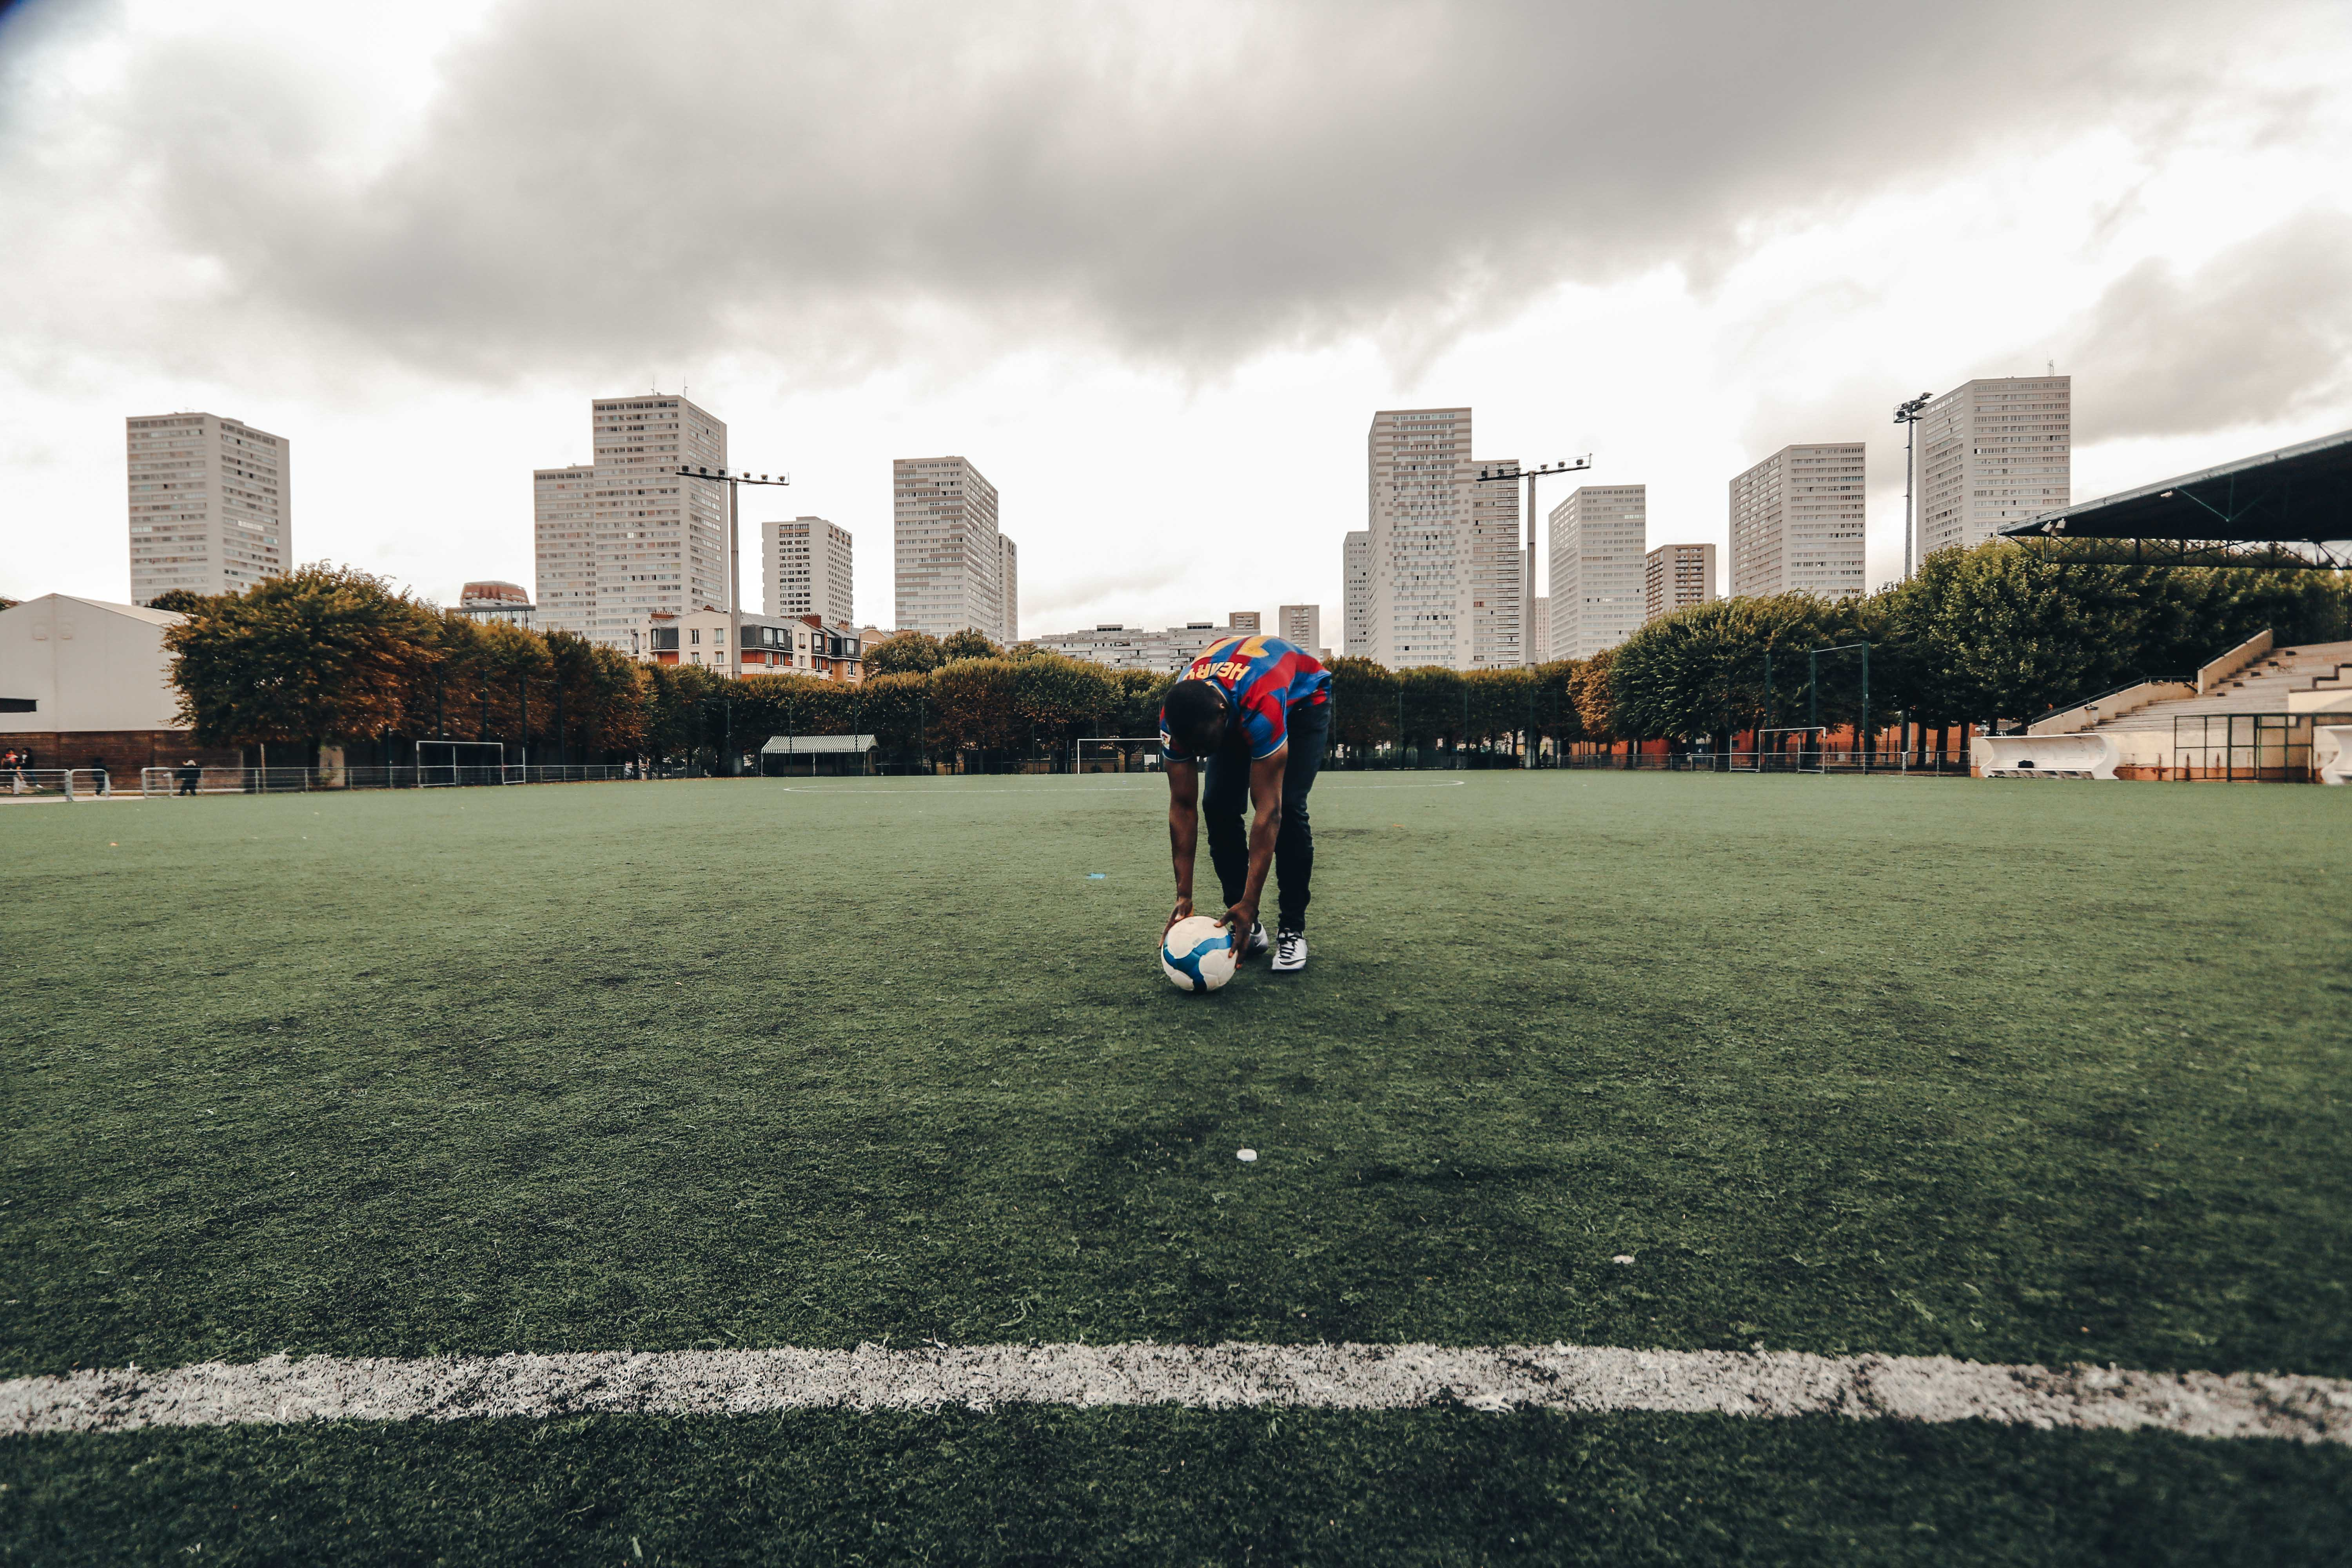 fff, football, foot, football amateur, playground, terrain, sport,